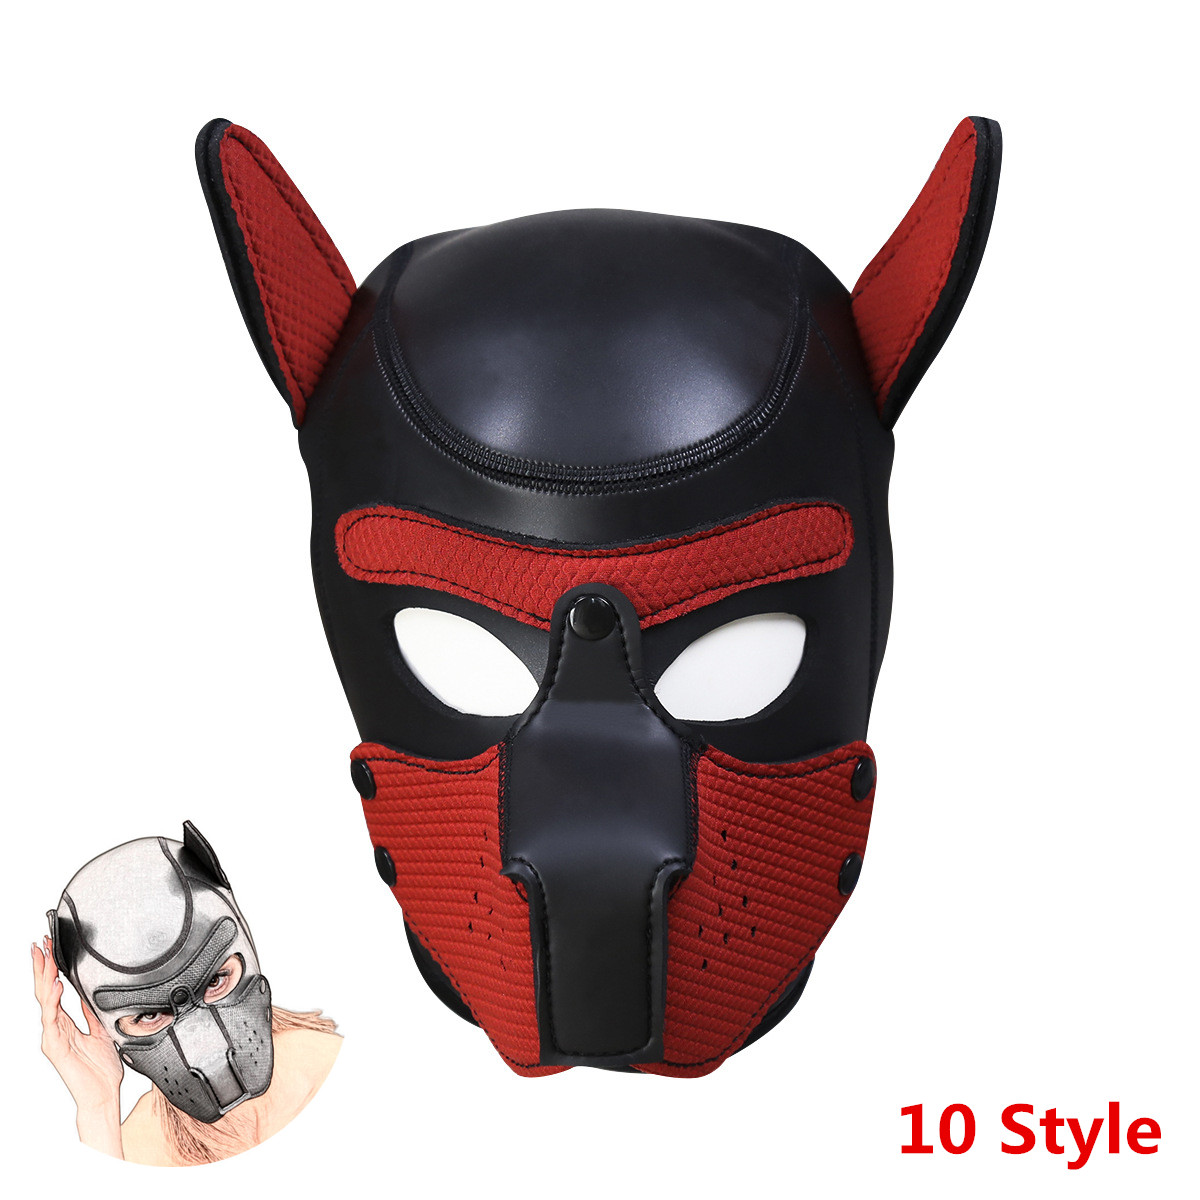 Slave Padded Latex Rubber <font><b>Dog</b></font> Hoods To Bdsm Bondage Pup Cosplay,Erotic <font><b>Mask</b></font> Costumes For <font><b>Sex</b></font>,Intimacy Goods For Couples Flirting image